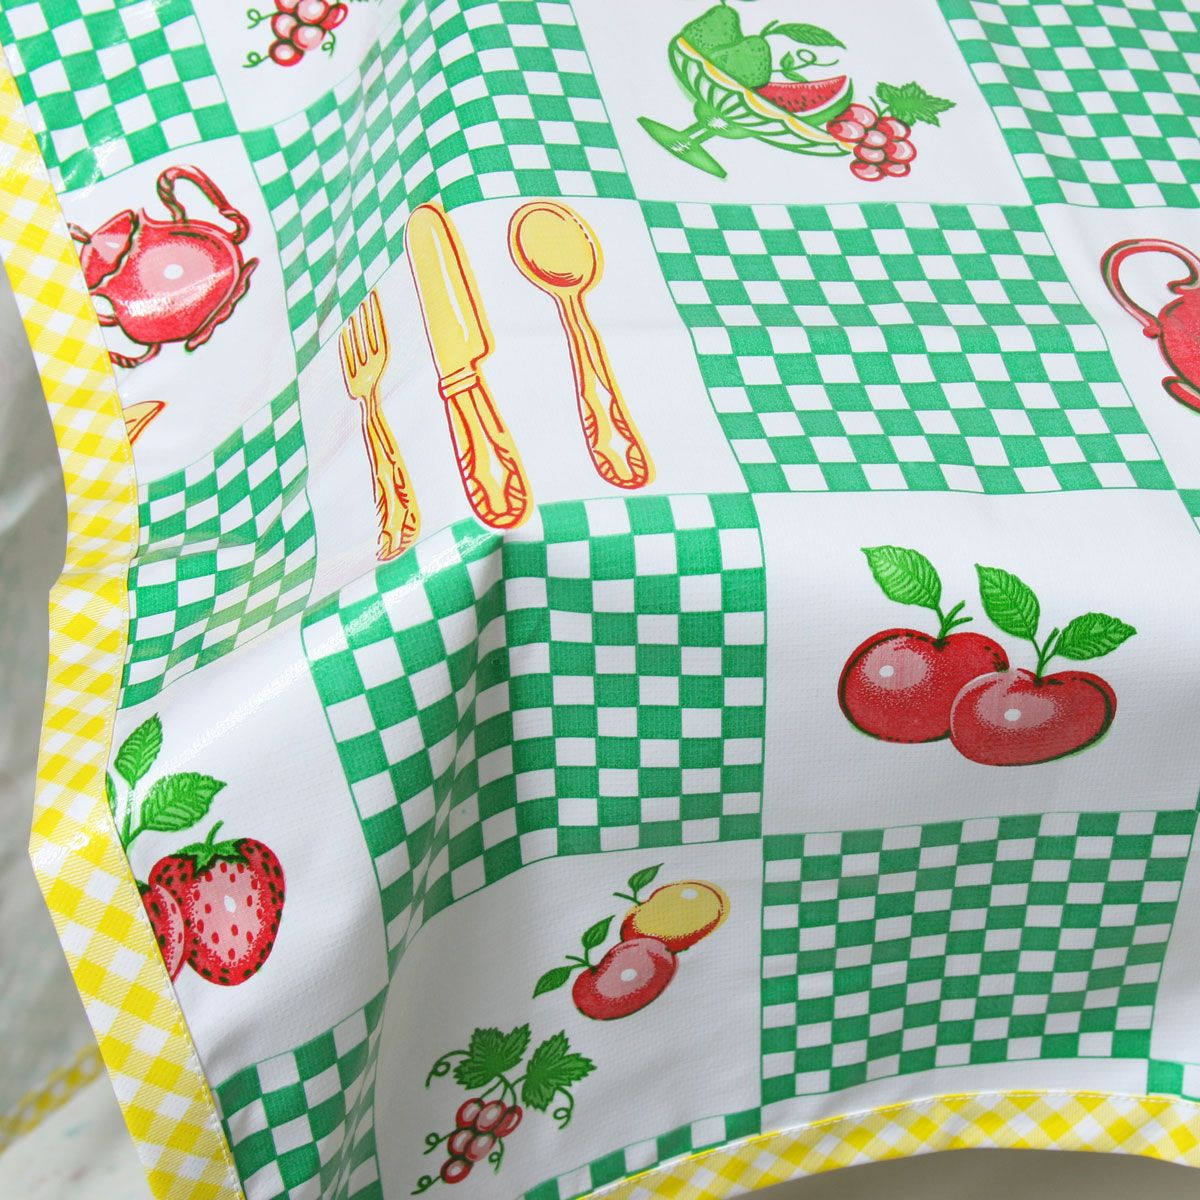 Fruit And Teapots Vintage Style Tablecloth. Heavy Duty Oilcloth Is  Fade Resistant,